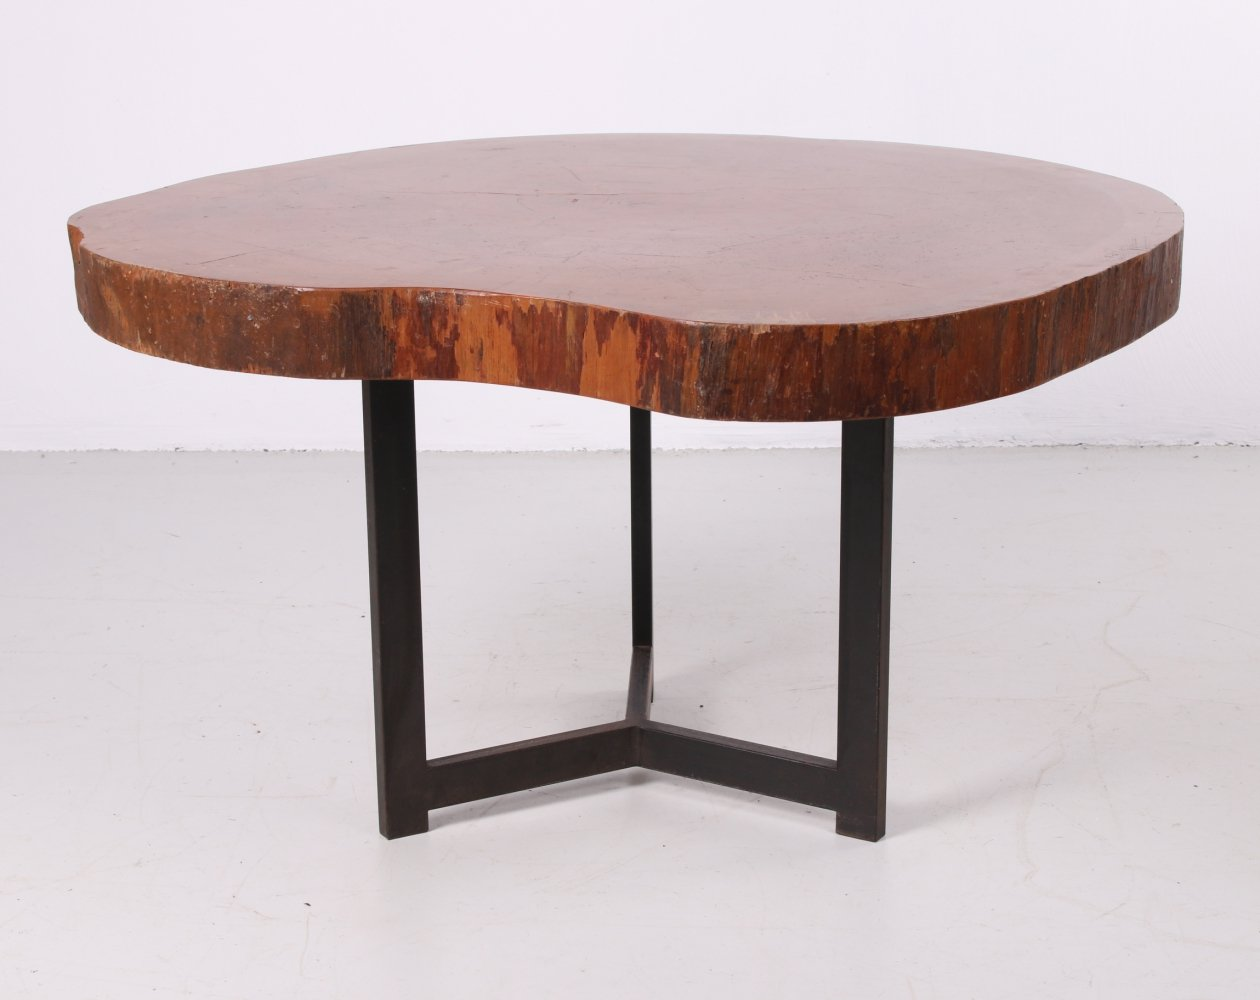 Vintage Tree Trunk Coffee table with metal base, 1960s